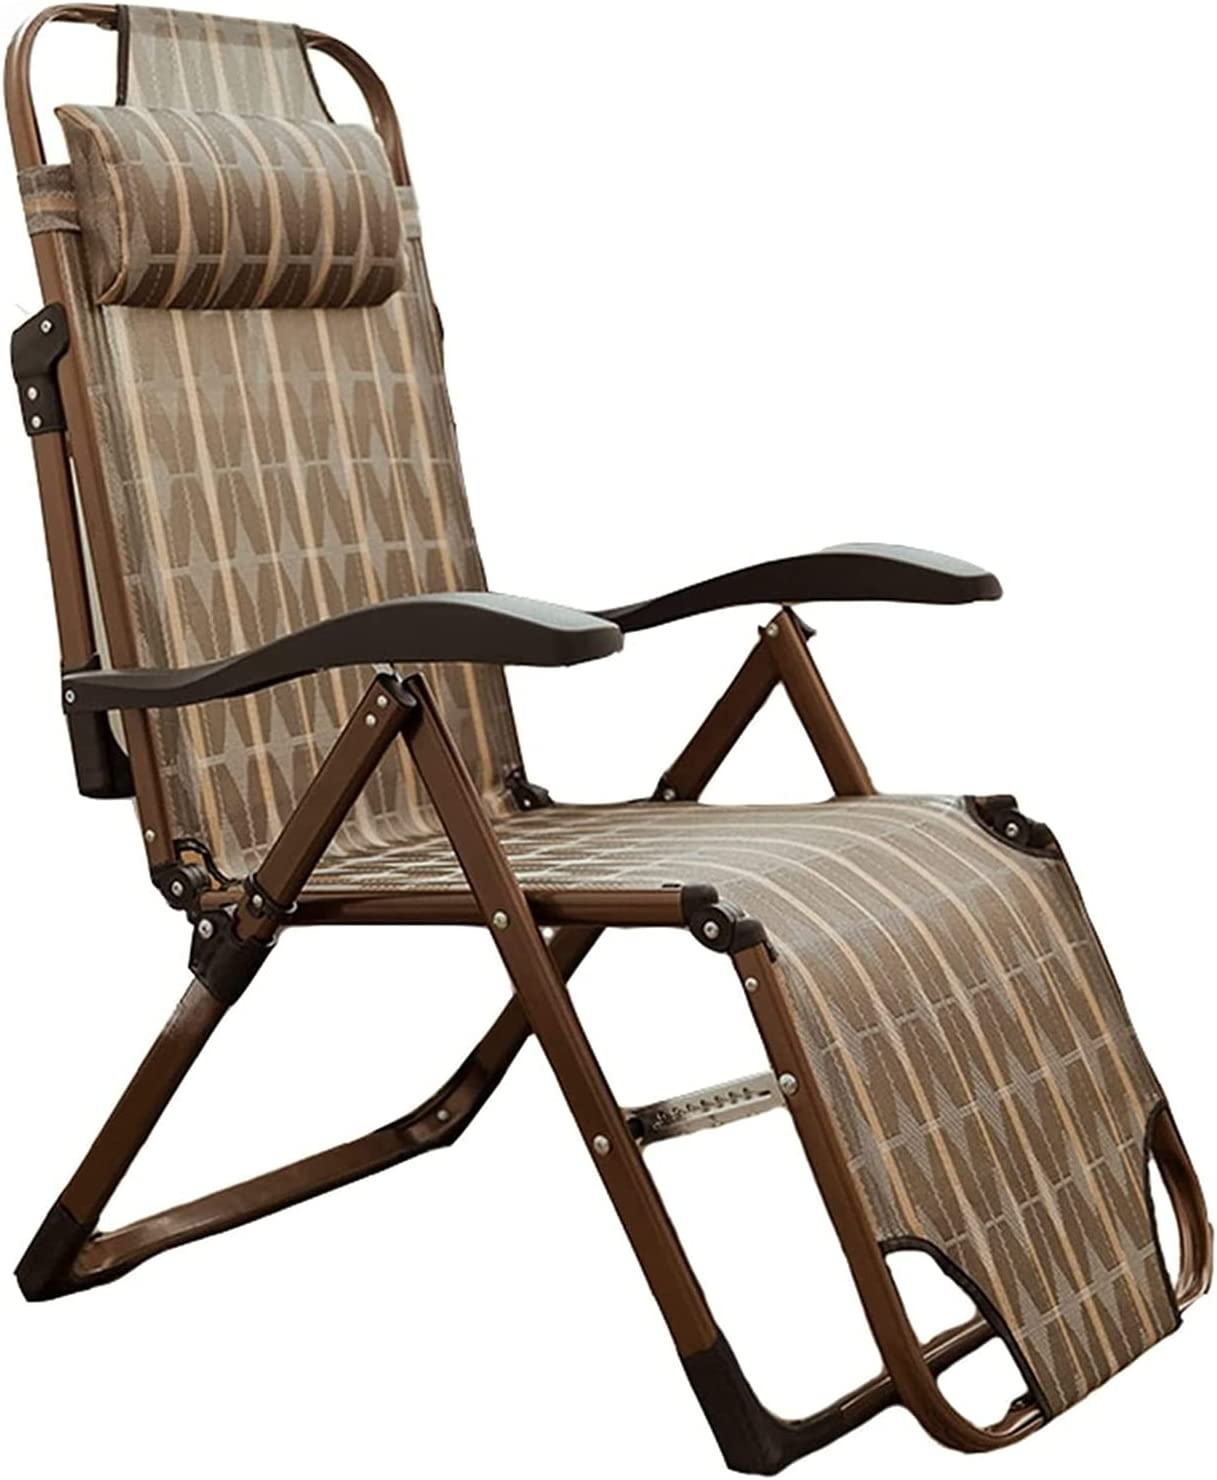 LIUZH Lightweight and Durable Folding Same day shipping Khaki Max 71% OFF Meta Portable Chair